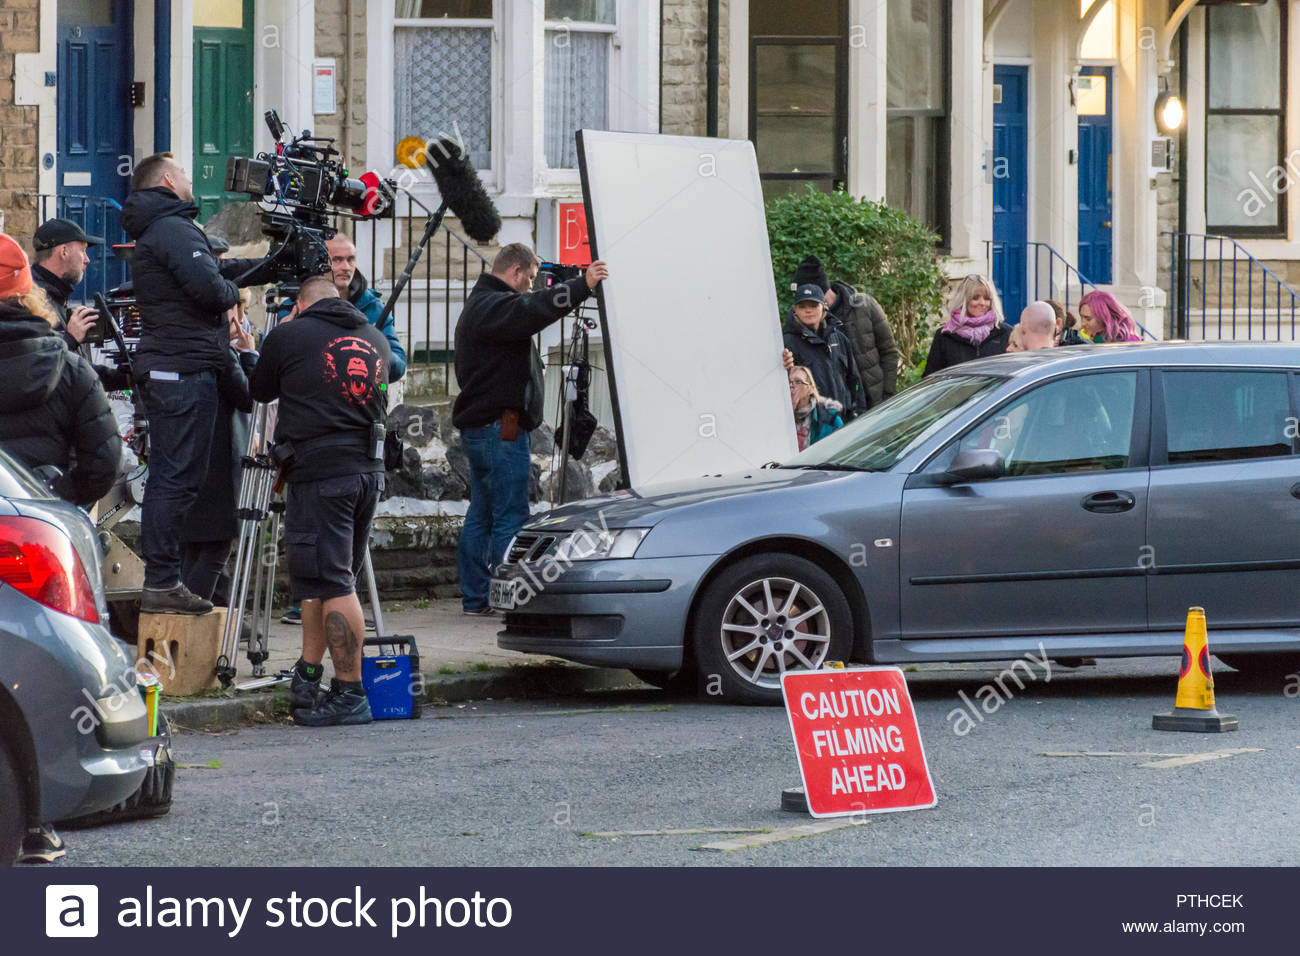 A film crew filming a new ITV crime drama 'The Bay' in locations around Morecambe and Heysham. Evening filming in West End Road - Stock Image